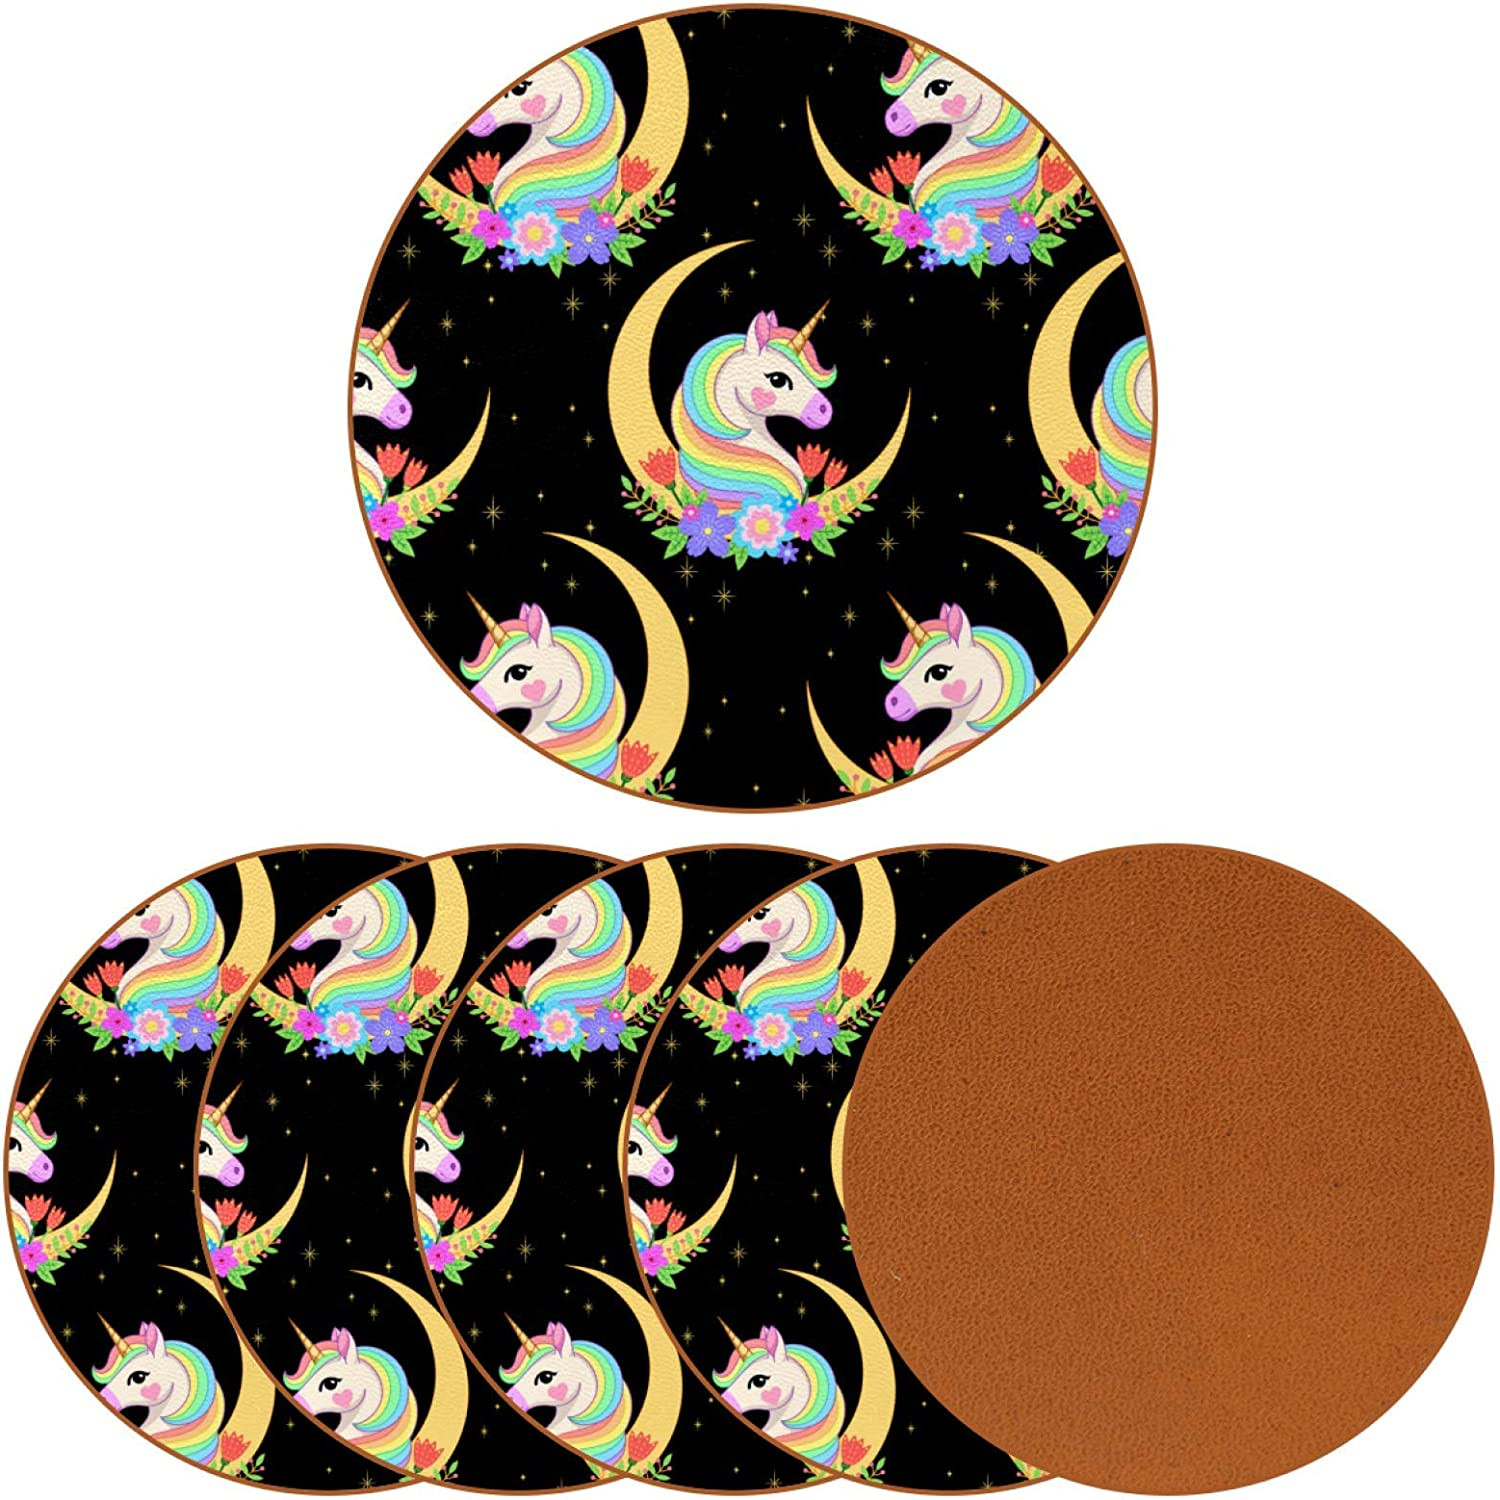 Crescent with Unicorn Head Coasters for Drinks,Naughty Gifts for Apartment Decor,Leather Coasters Protect Your Furniture from Stains,6PCS